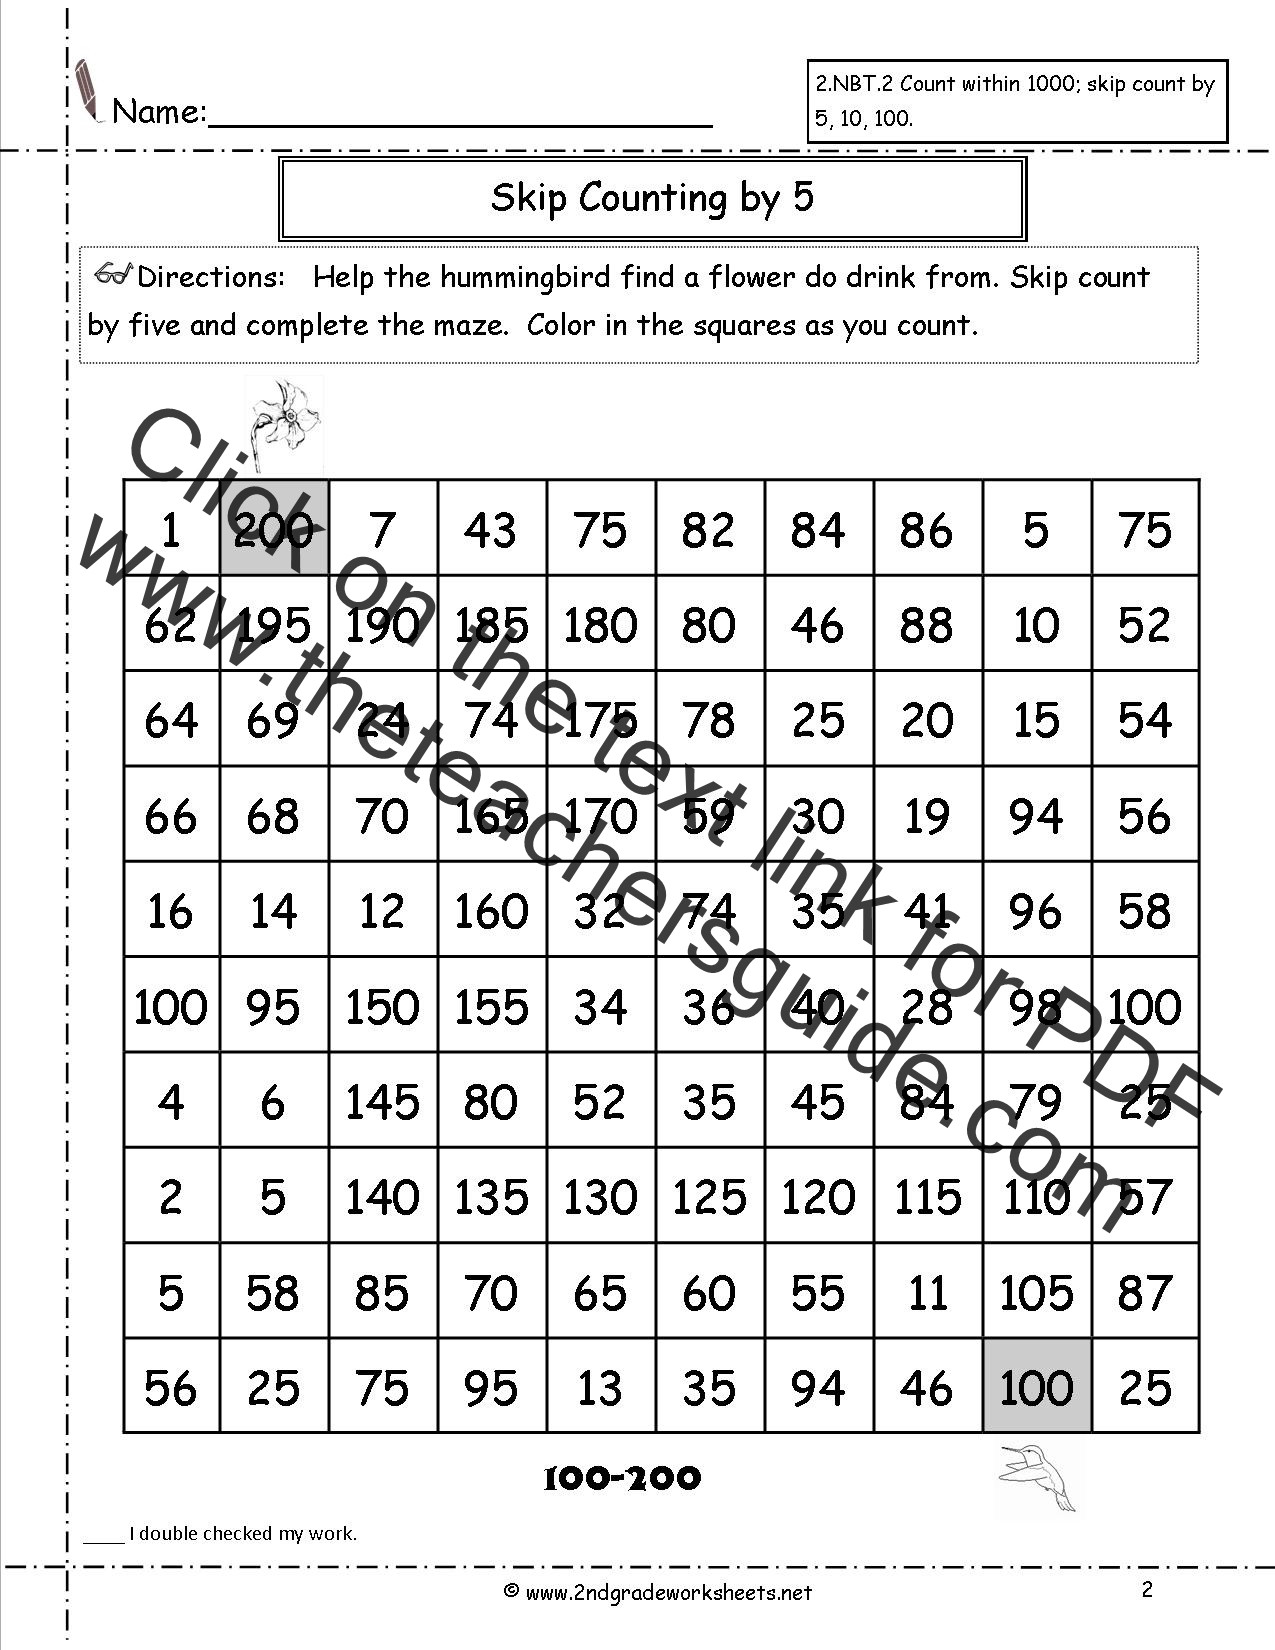 Skip Counting Worksheets 2nd Grade Skip Counting Patterns Worksheet